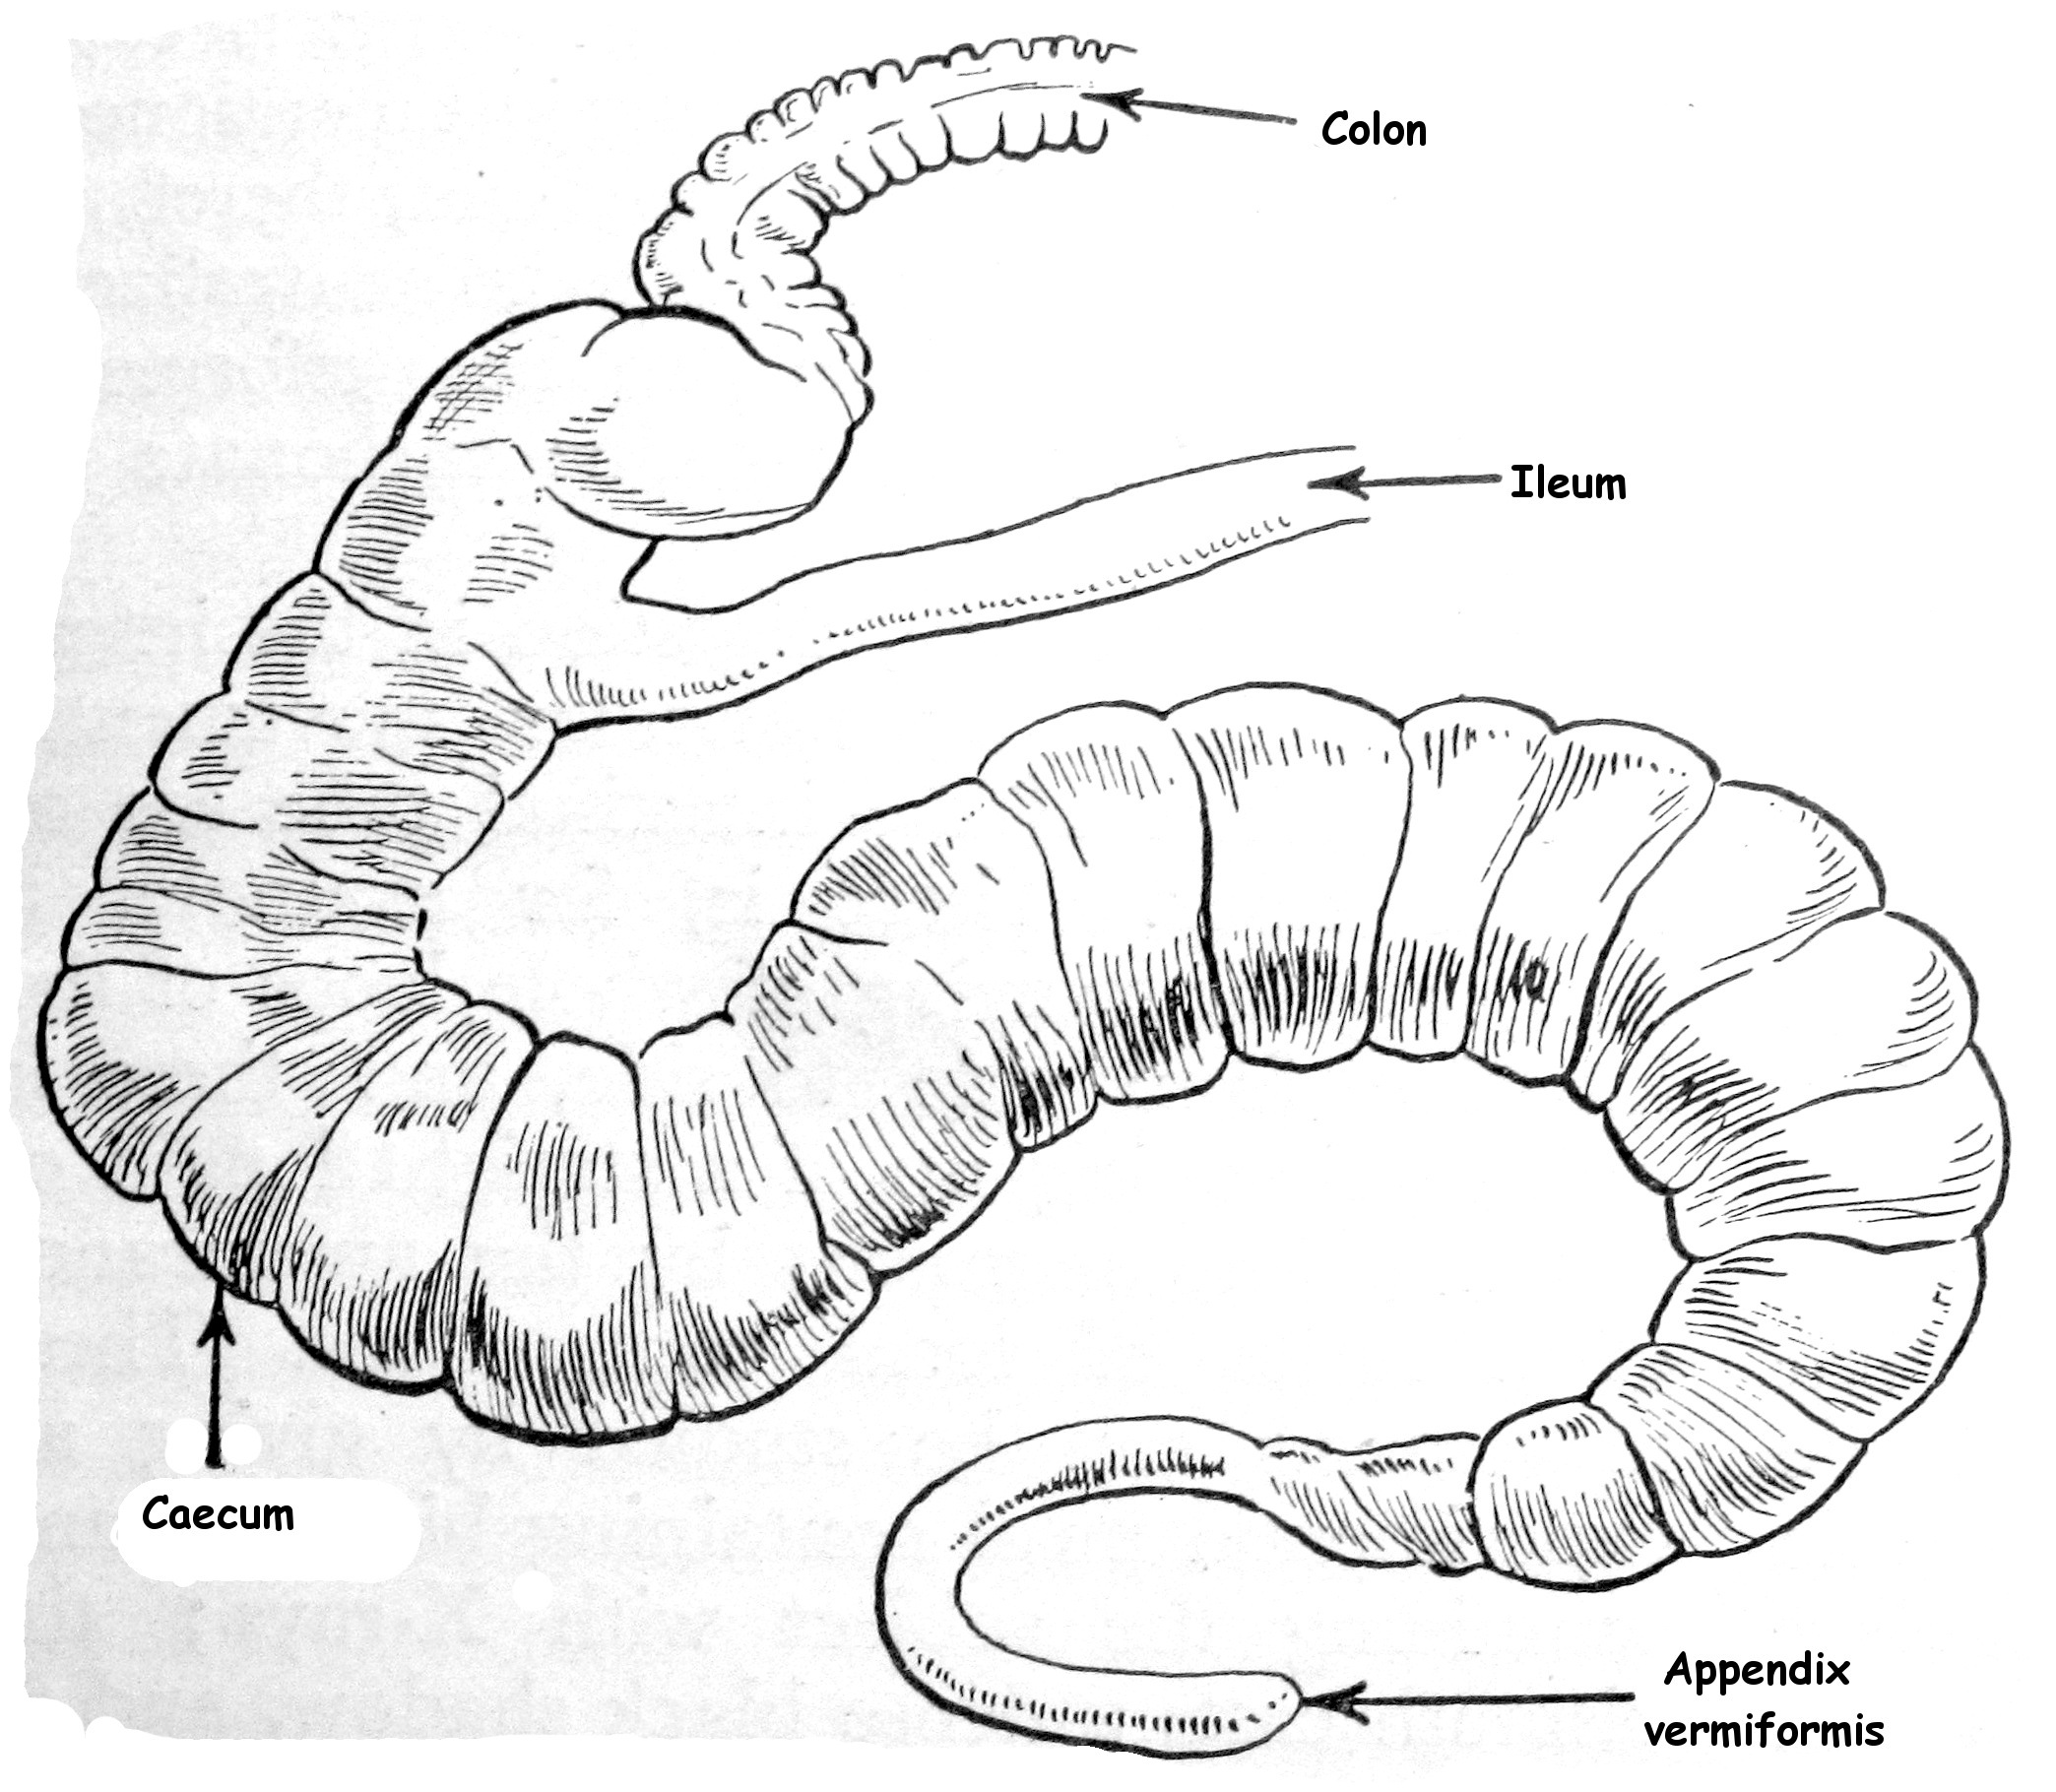 File:Ileum-Caecum-Colon of rabbit IMG 5771.JPG - Wikimedia Commons